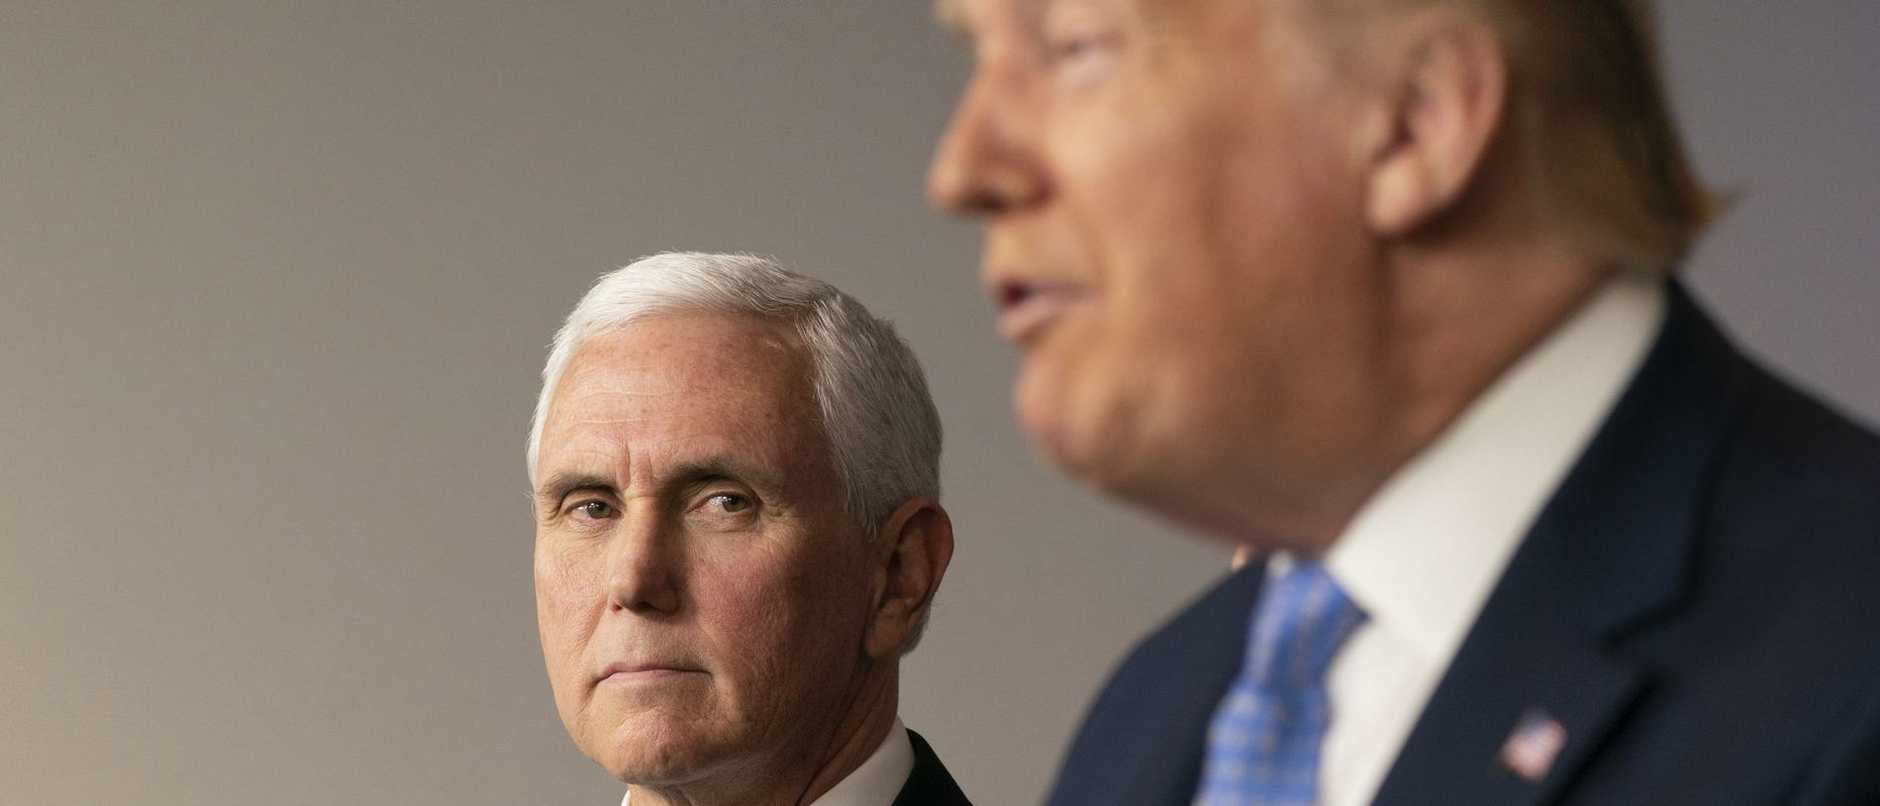 One defiant act by Vice President Mike Pence kicked off a catastrophic chain of events that left four dead and US democracy in tatters.